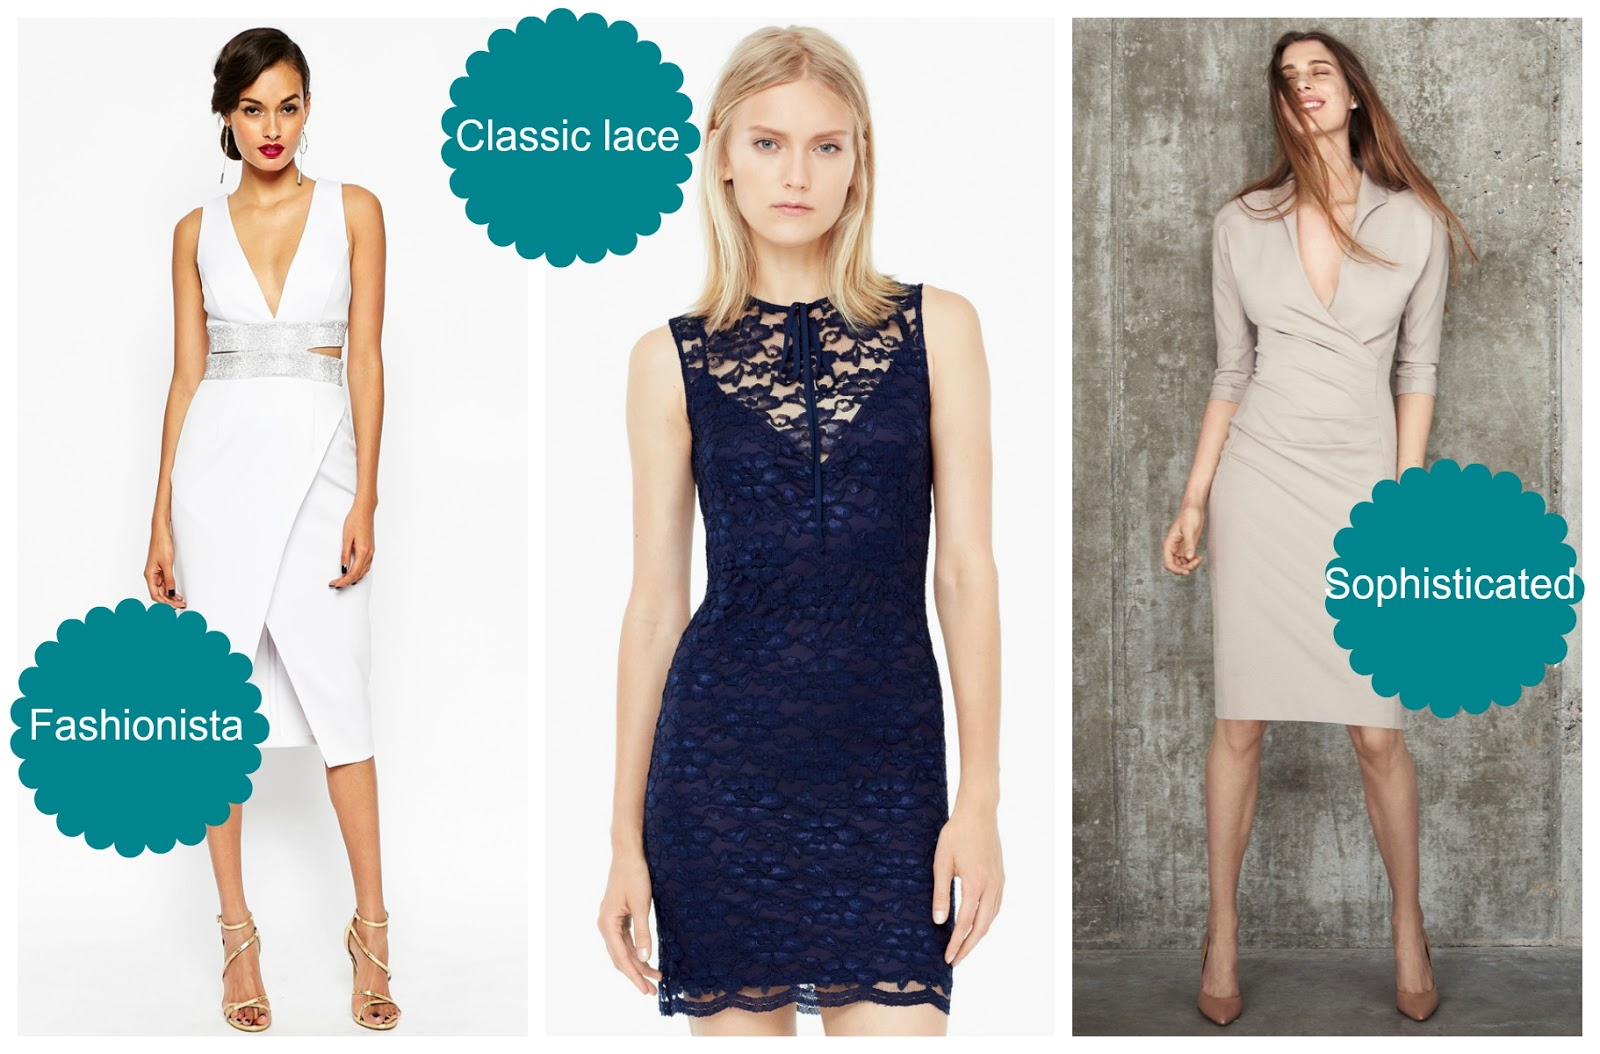 Fashionista - Diamante Cage Dresses For Teenage Girls For A Wedding